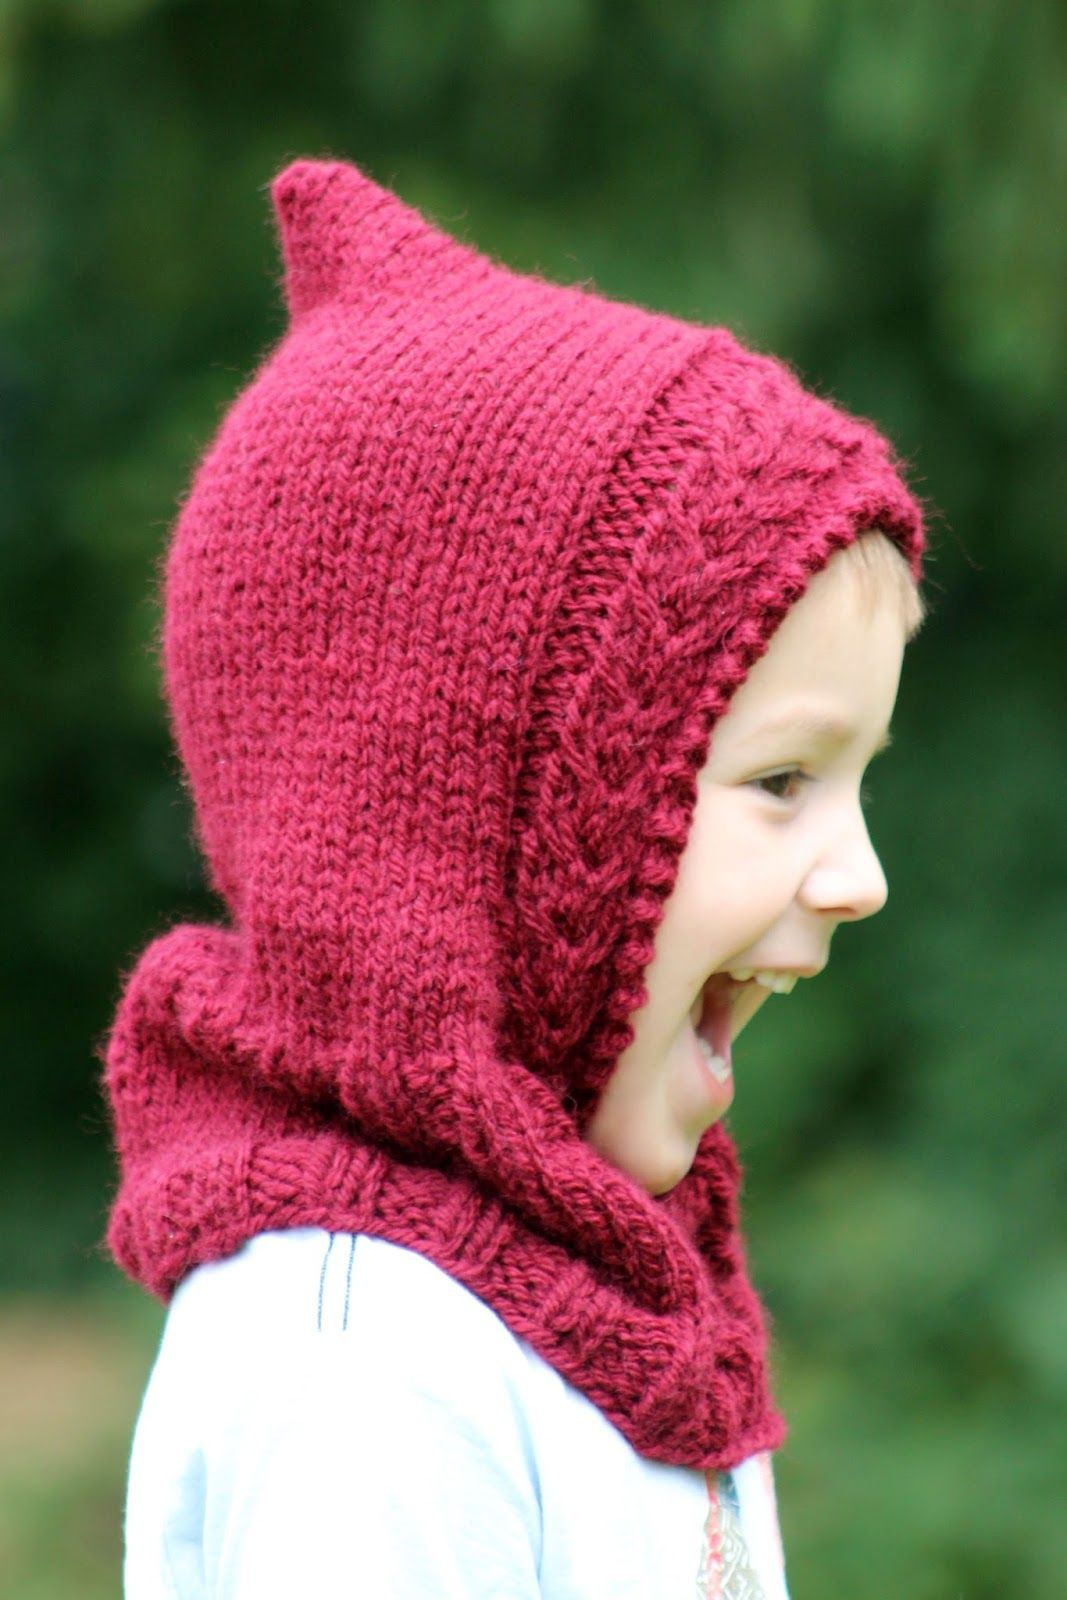 Little Red Hooded Cowl | Pinterest | Hooded cowl, Knitting patterns ...